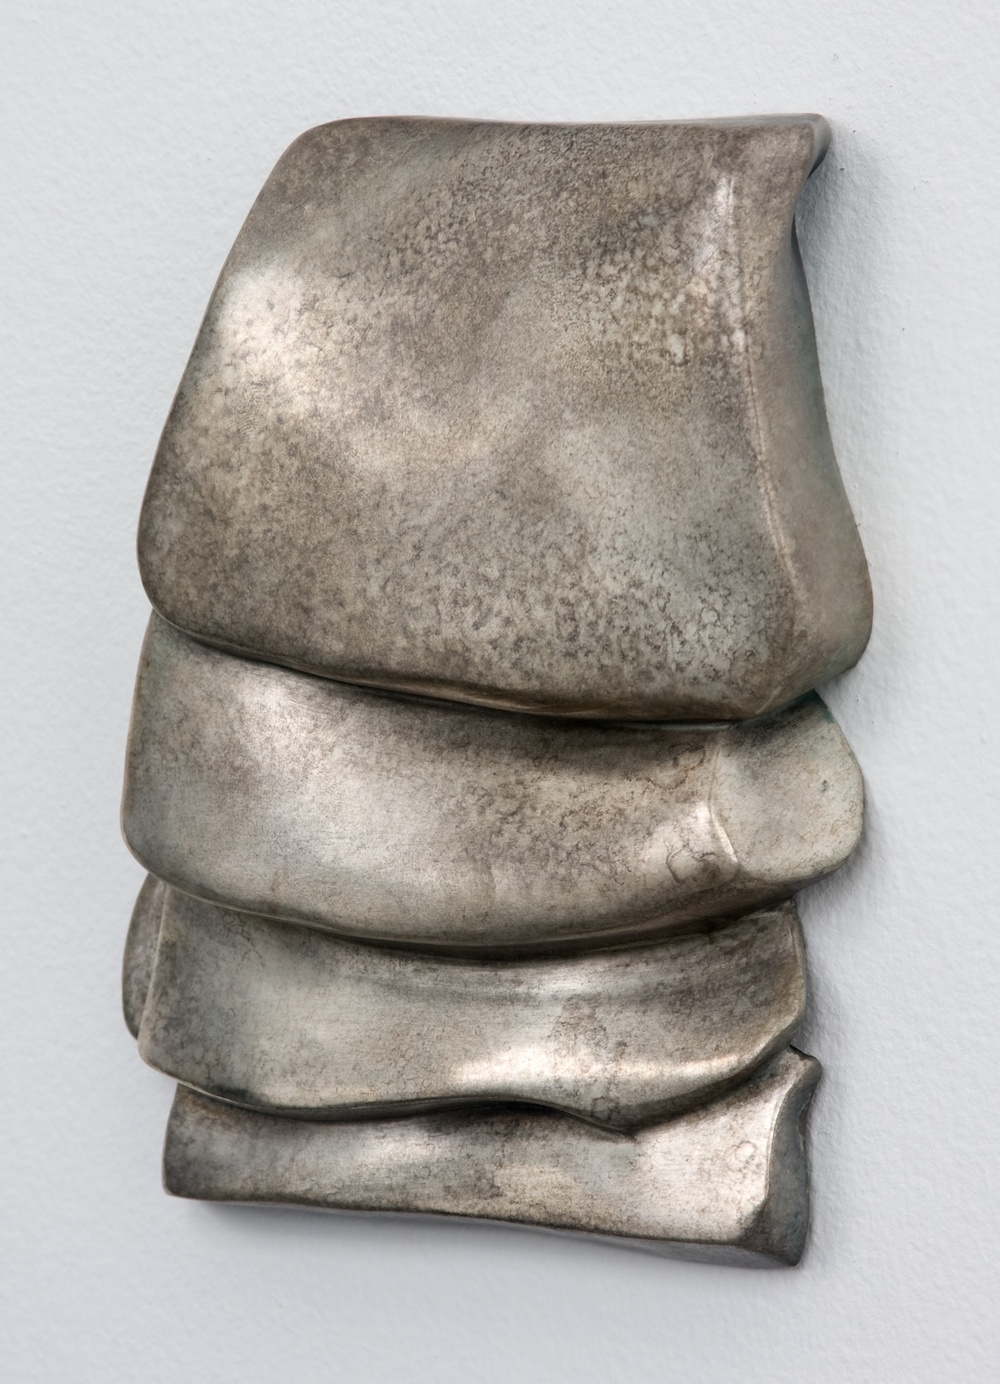 Anthony Pearson  Untitled (Tablet)  2010 Bronze sculpture with silver nitrate patina 17 ½h x 13 ¼w in AP244